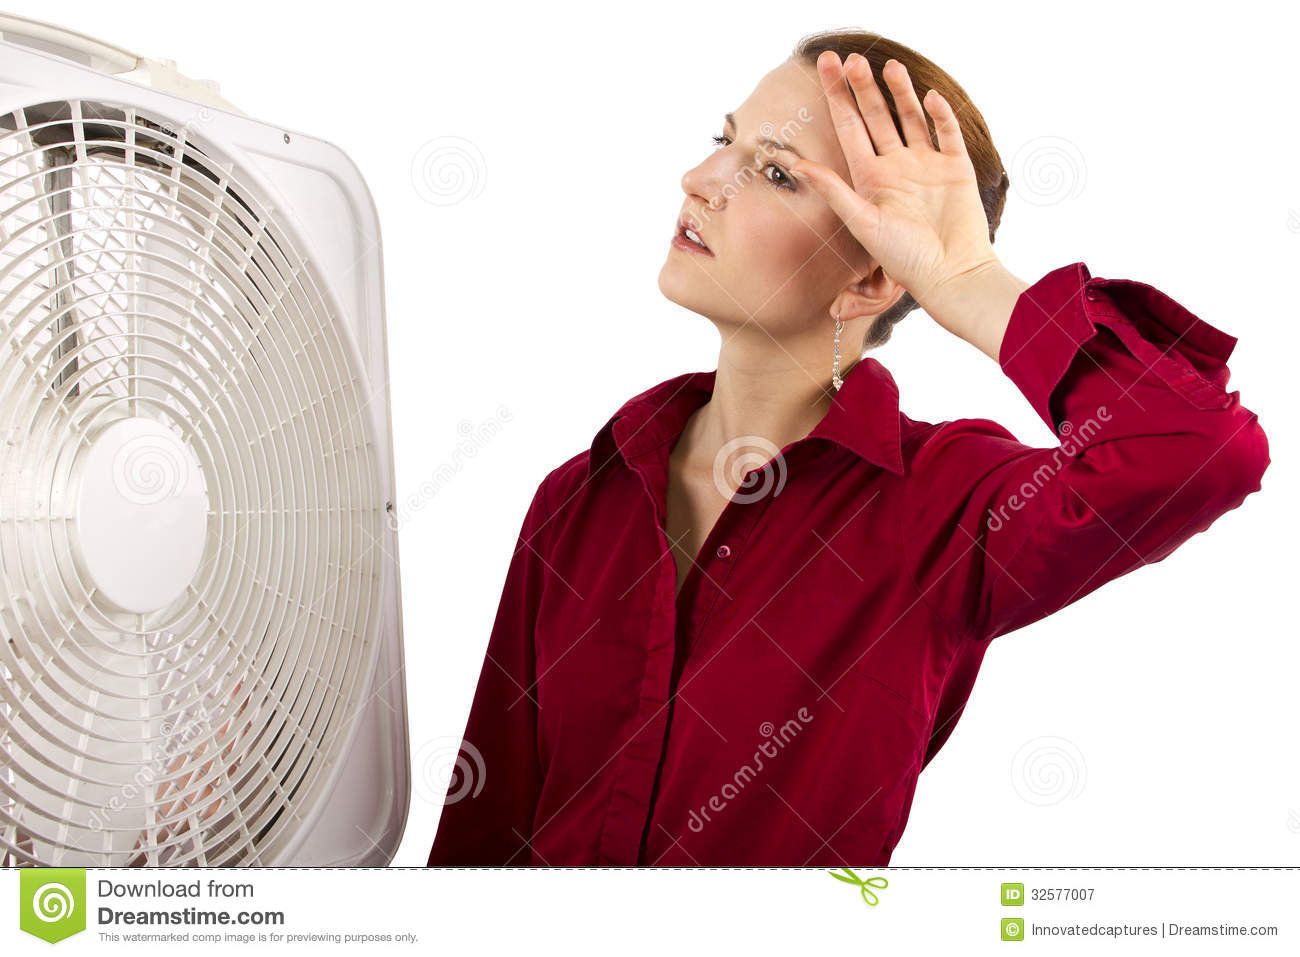 Cooling Off With Fan : Staying cool at work royalty free stock photography